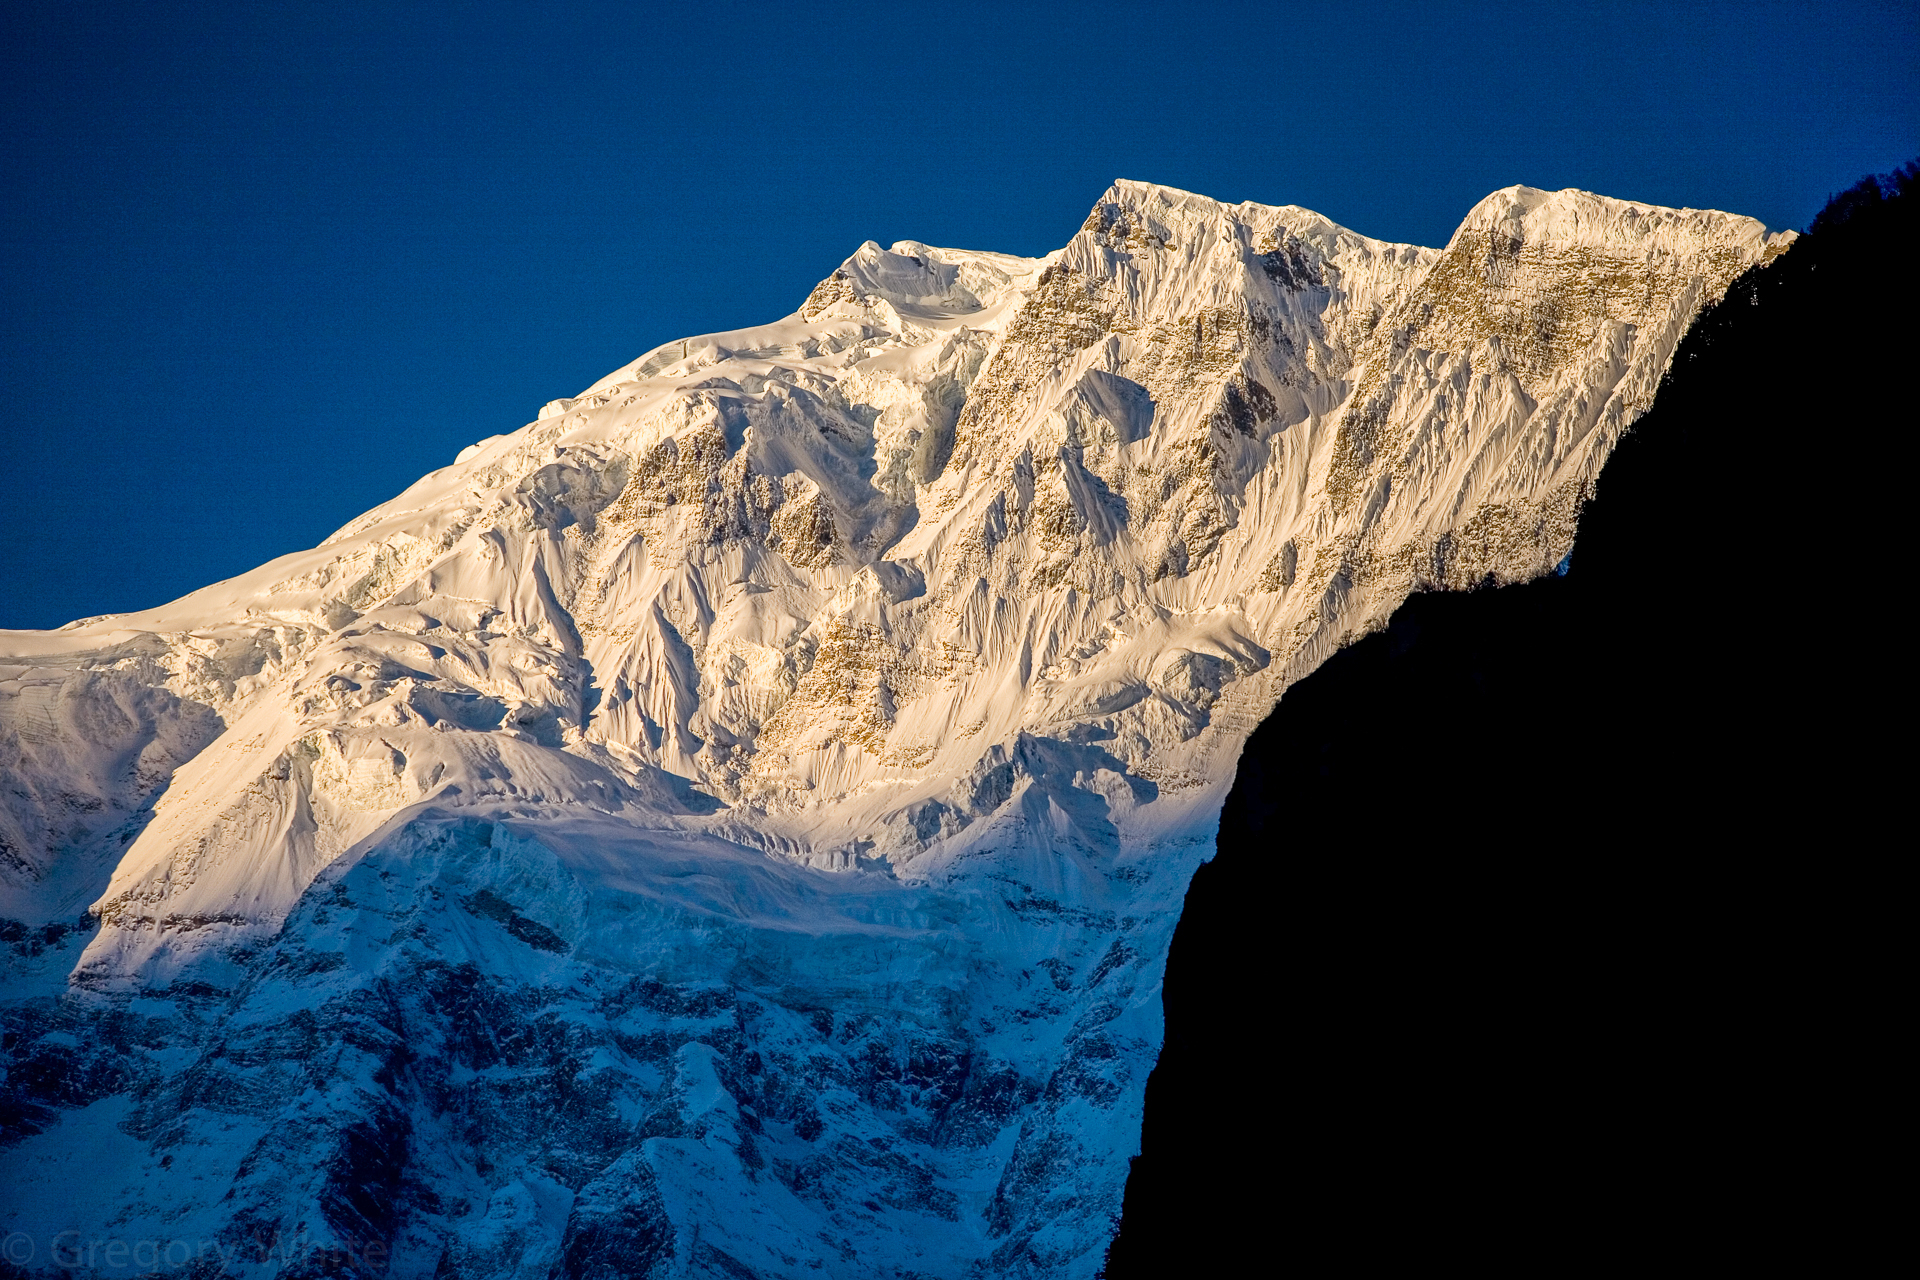 Annapurna IV at sunrise.   7525 meters.